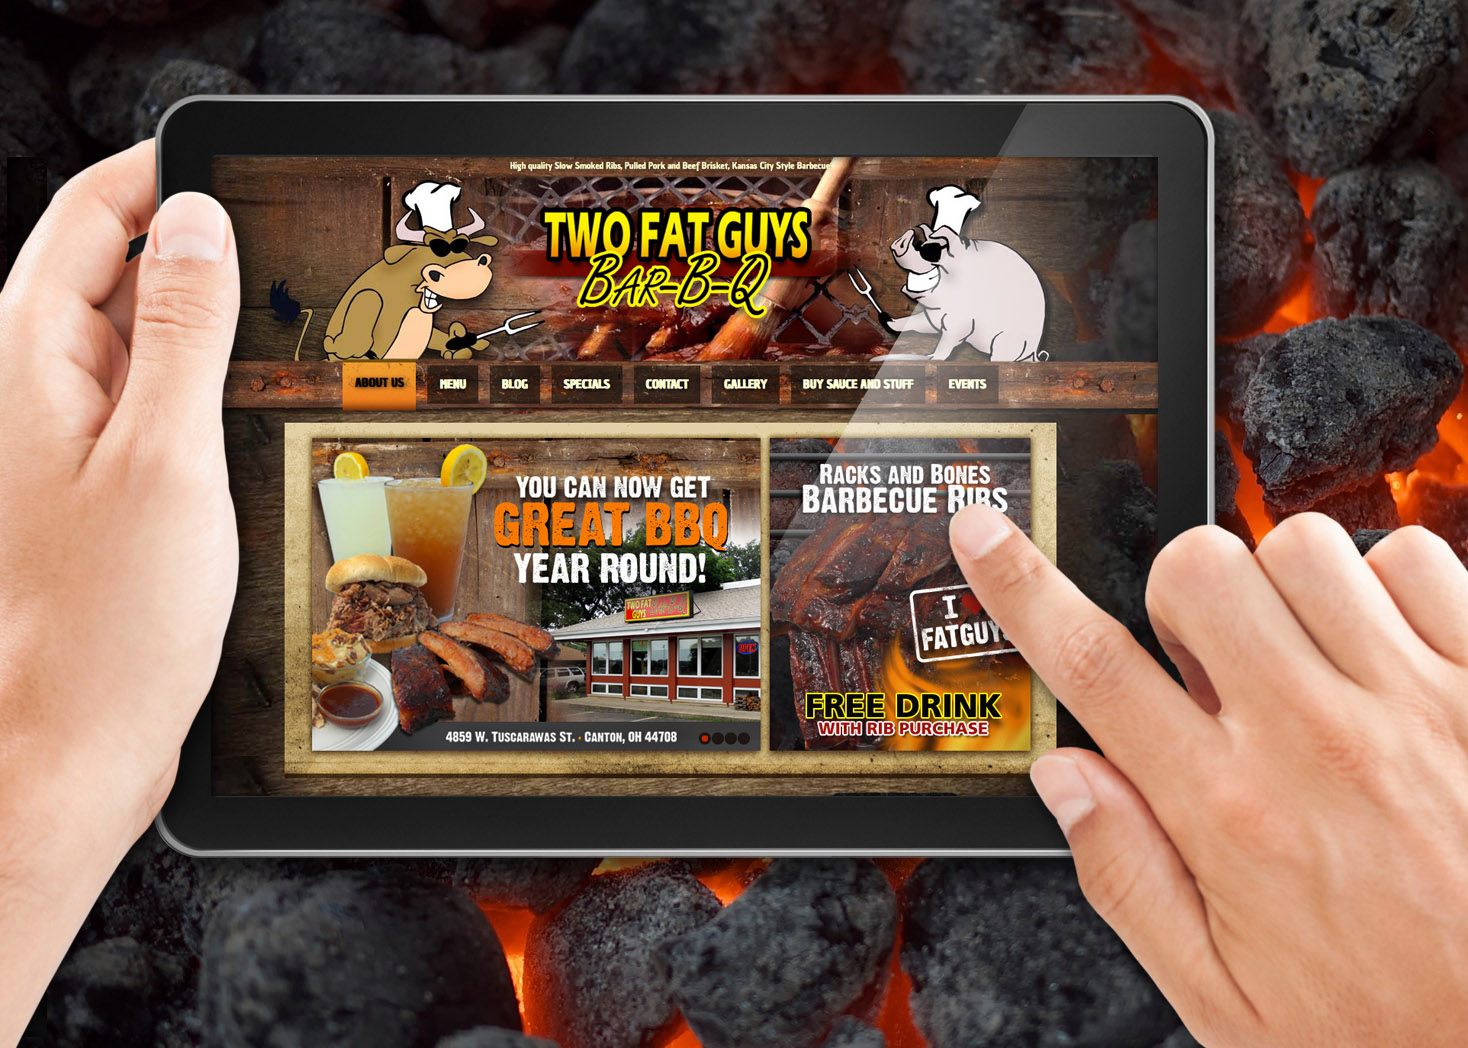 Two Fat Guys BBQ Website Design and Development - Lehman Design